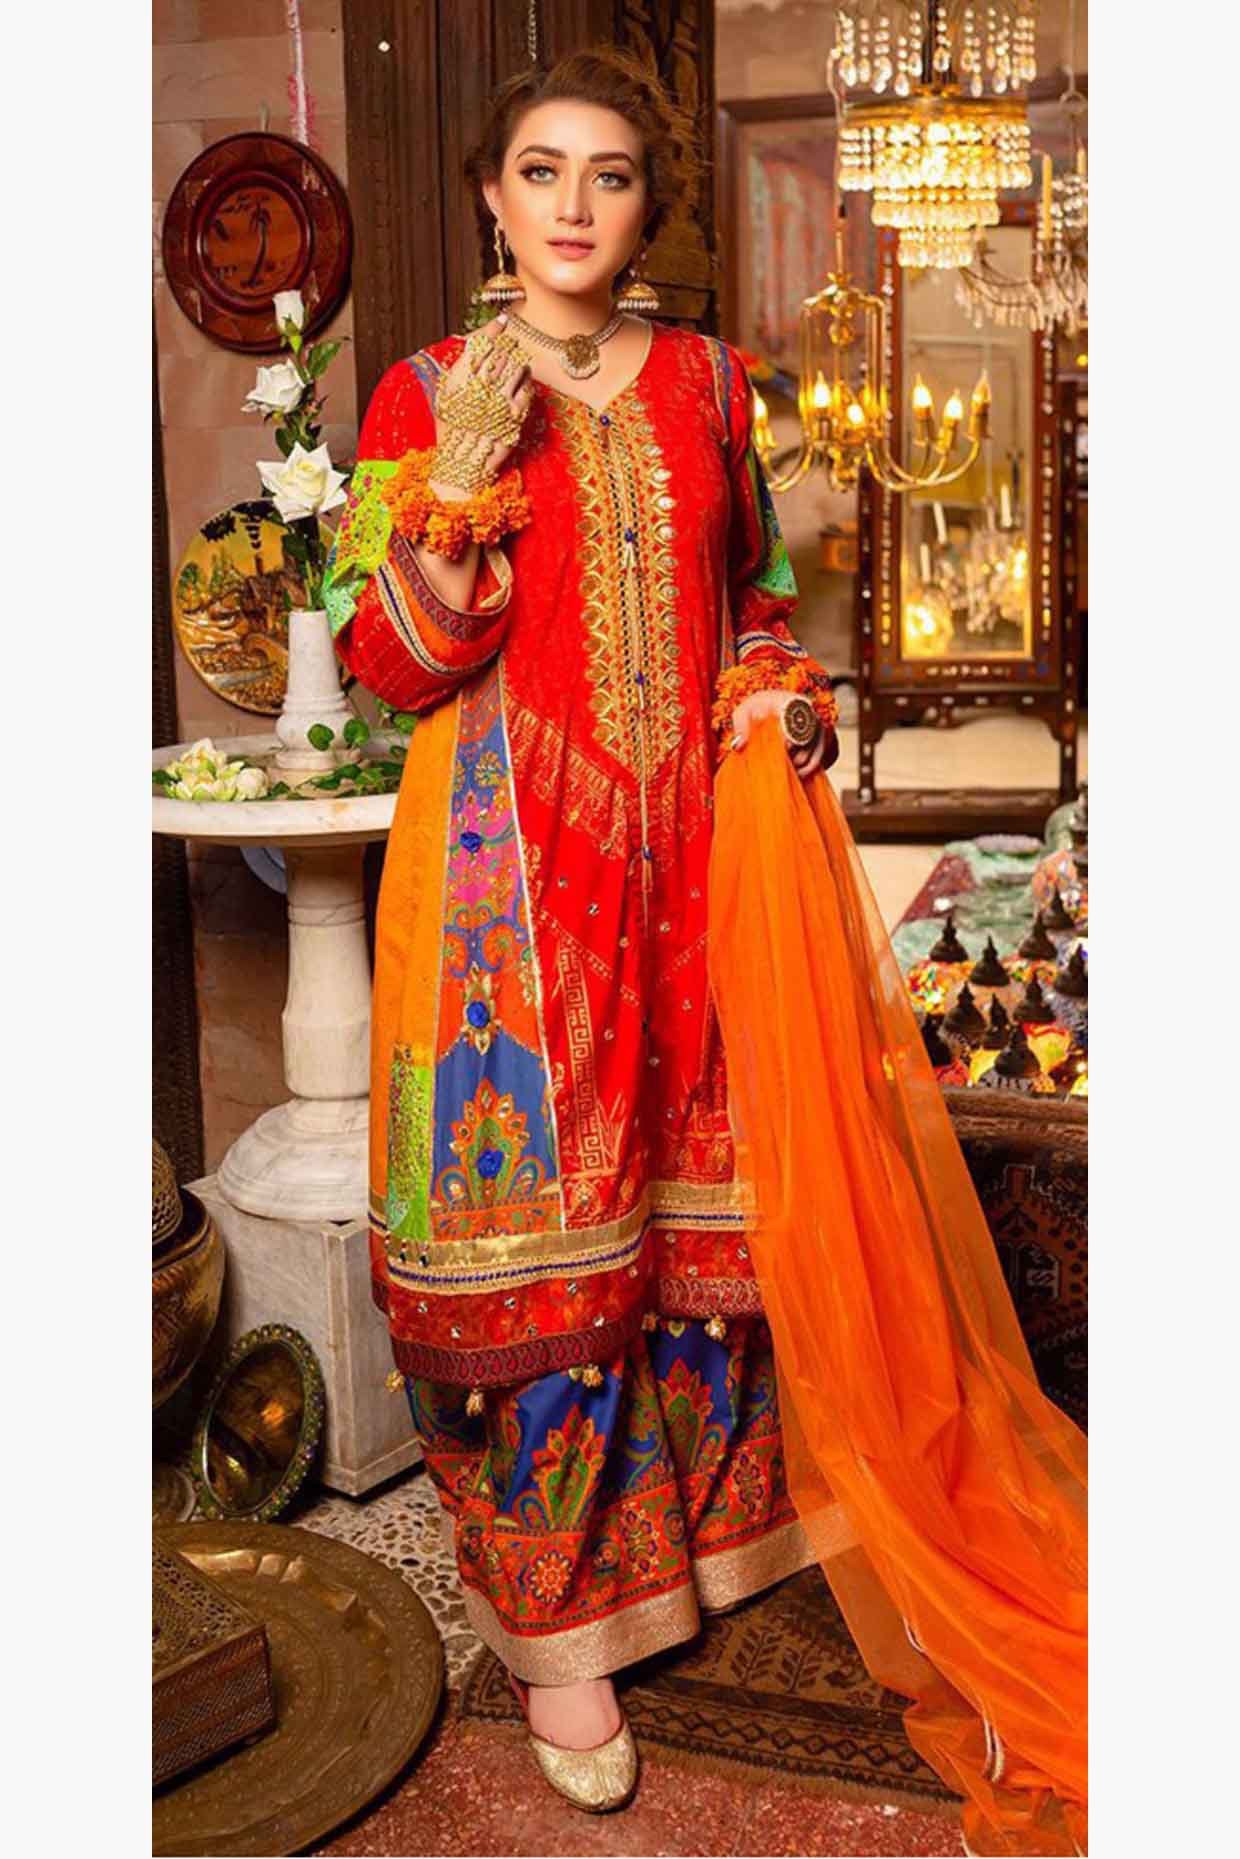 Zara Ahmad 18237-Embroided 3pc lawn dress with printed chiffon dupatta. - gracestore.pk